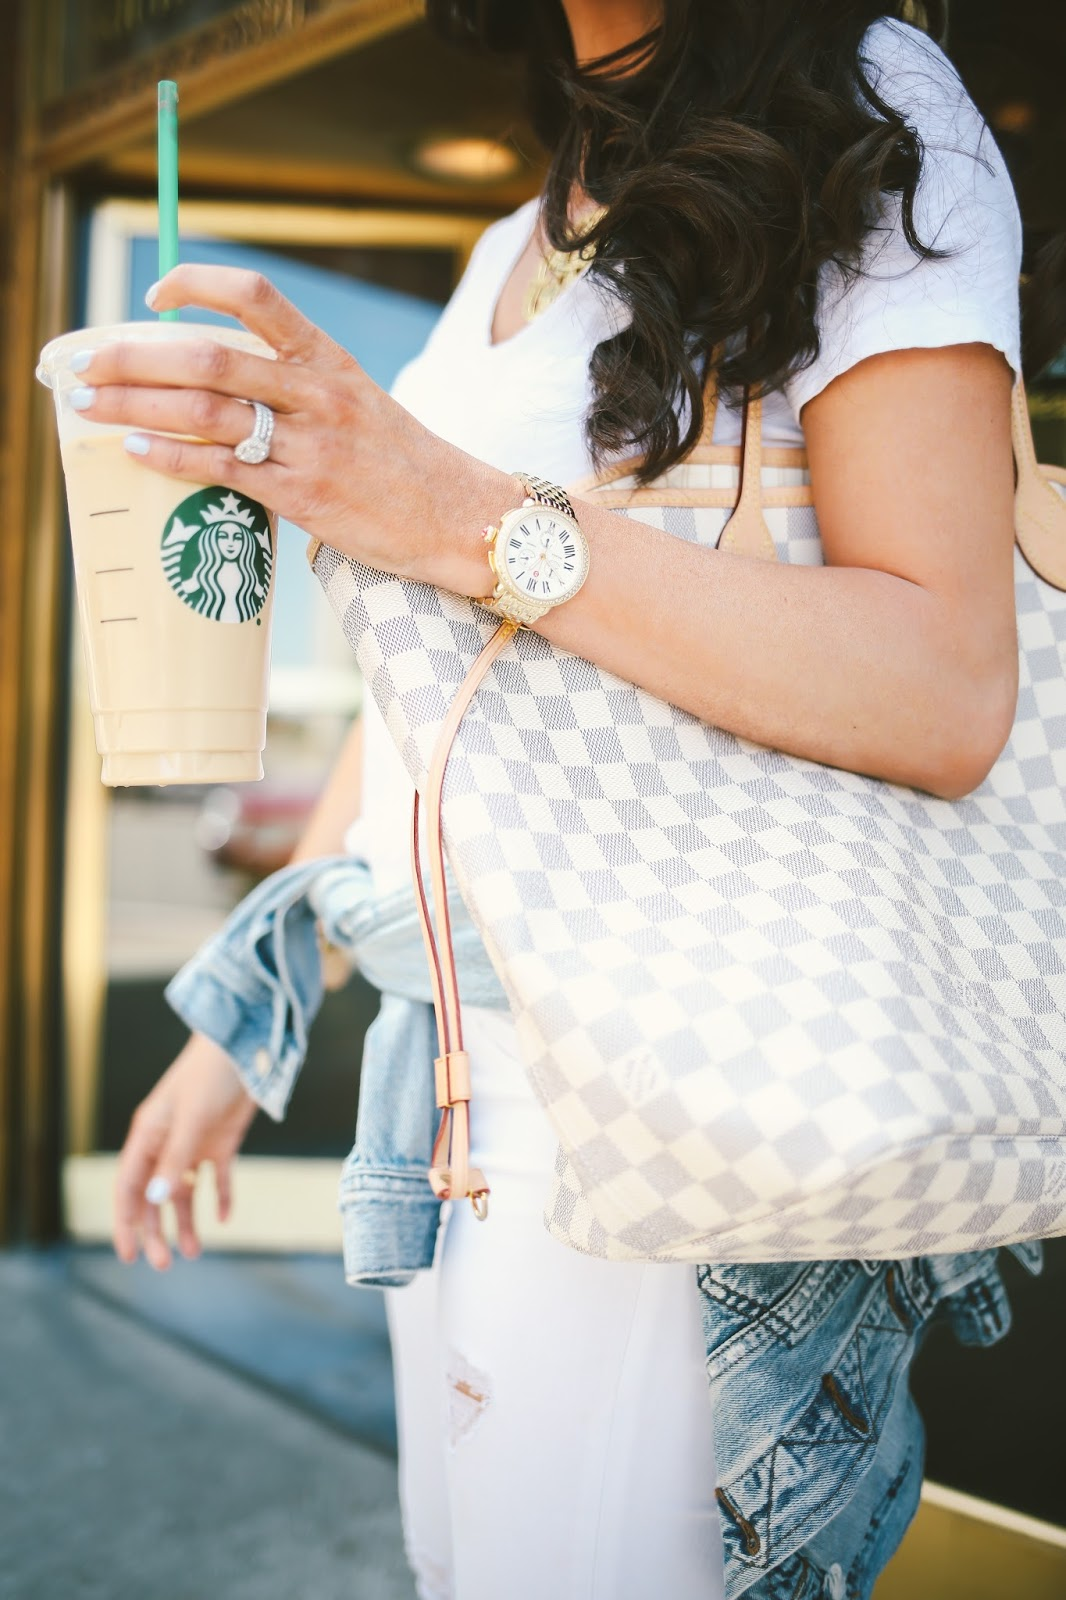 all white outfits for spring and summer, louis vuitton neverful damier azur, j brand white distressed denim, white tee made well, janessa leone grey hat, summer fashion pinterest, spring fashion pinterest, outfit idea summer pinterest, tulsa fashion blogger, downtown tulsa, vince camuto conley bootie, michele Serein watch 18mm, david yurman bracelet stack, emily gemma, the sweetest thing blog, celine mirrored aviators